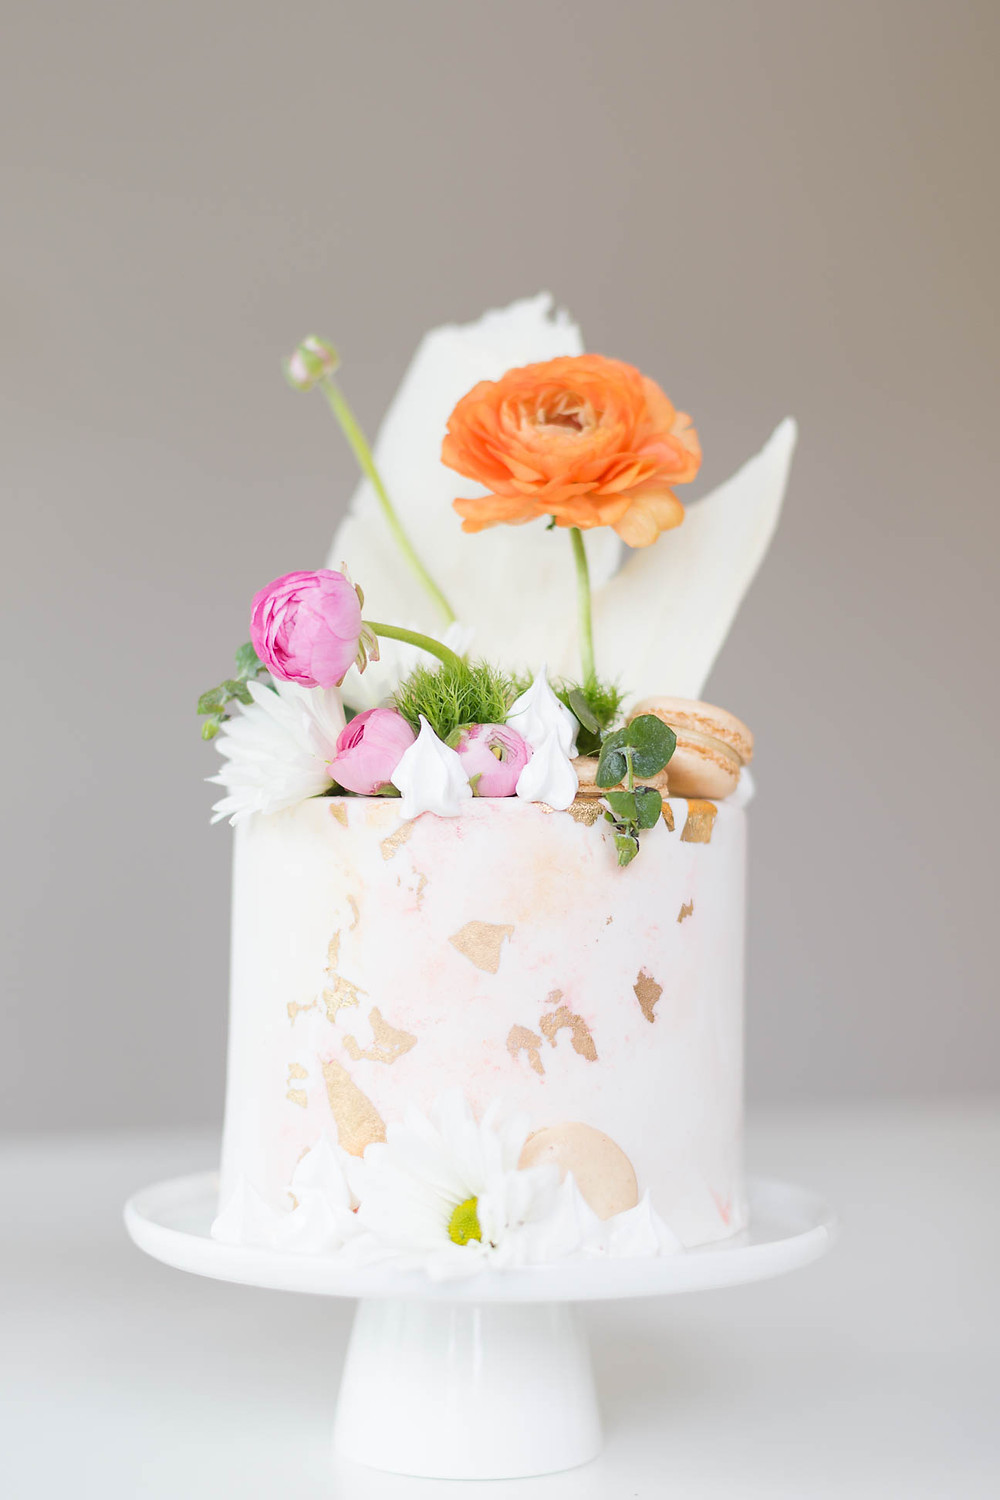 tiny wedding cake with orange ranunculus and white chocolate, golf foiled decorations, creative cakes